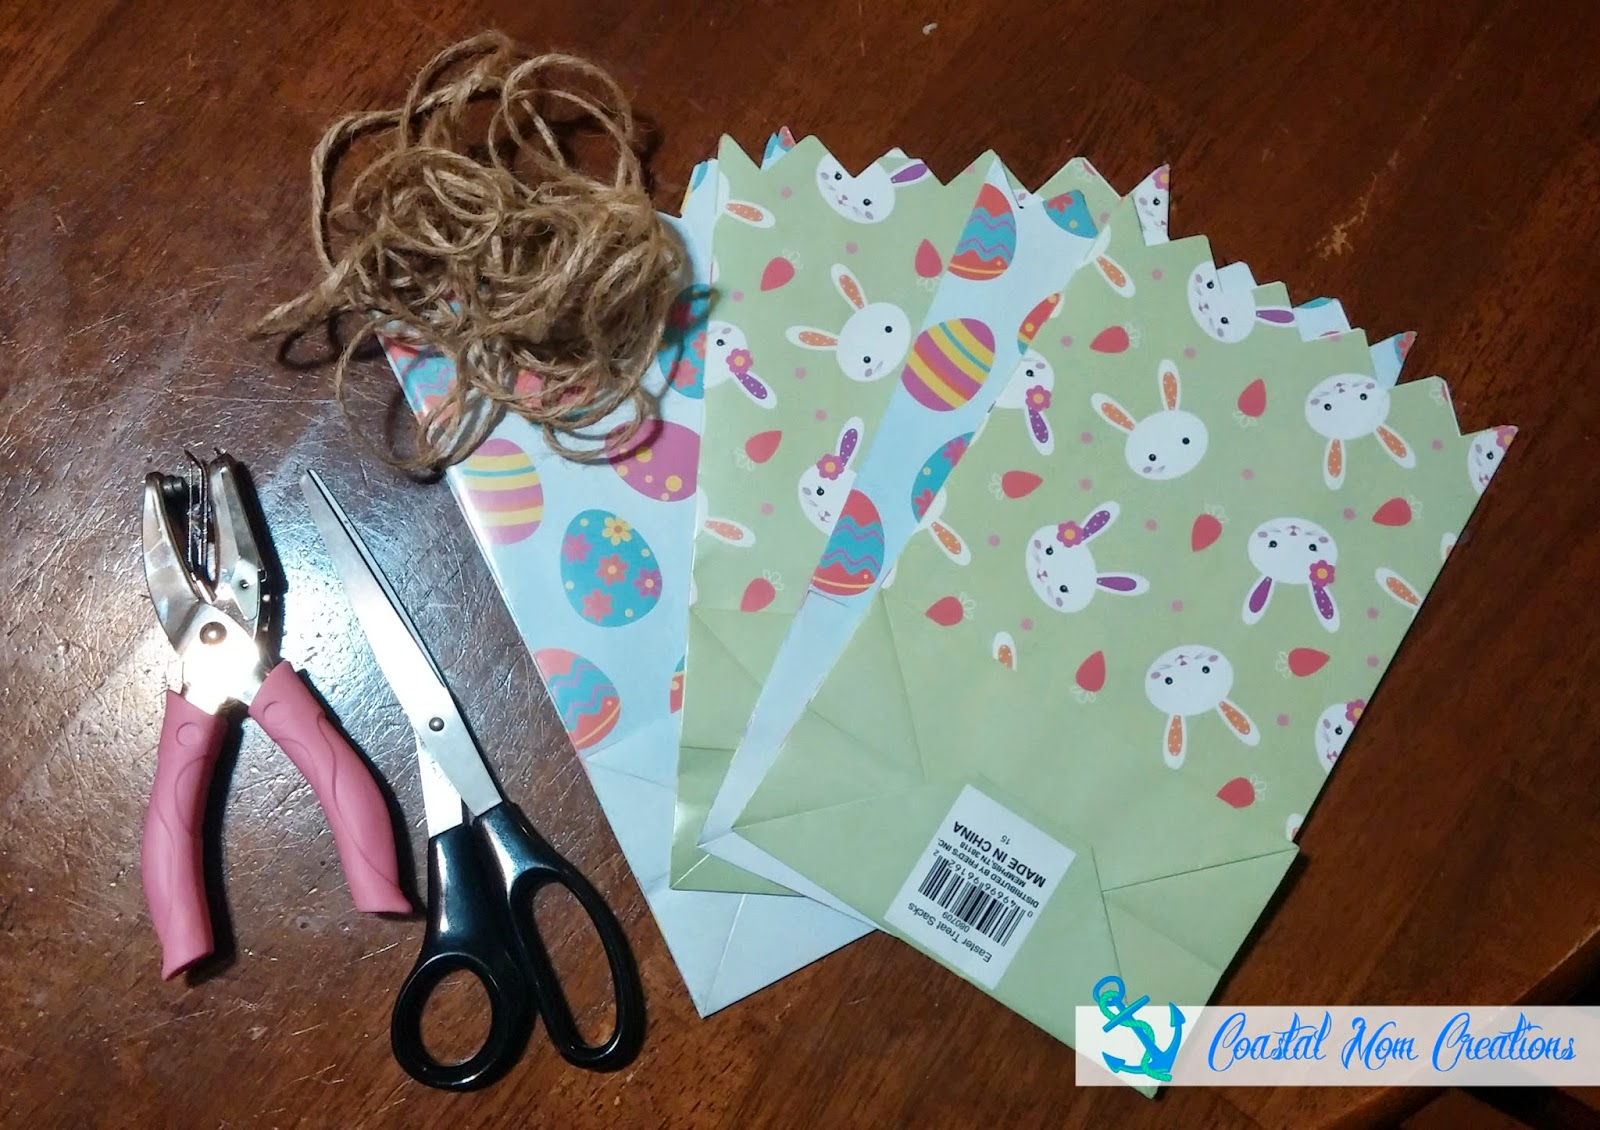 Coastal mom creations march 2015 all you need are easter gift bags twine scissors and a single hole punch she found the easter gift bags at freds for 25 cents each negle Image collections